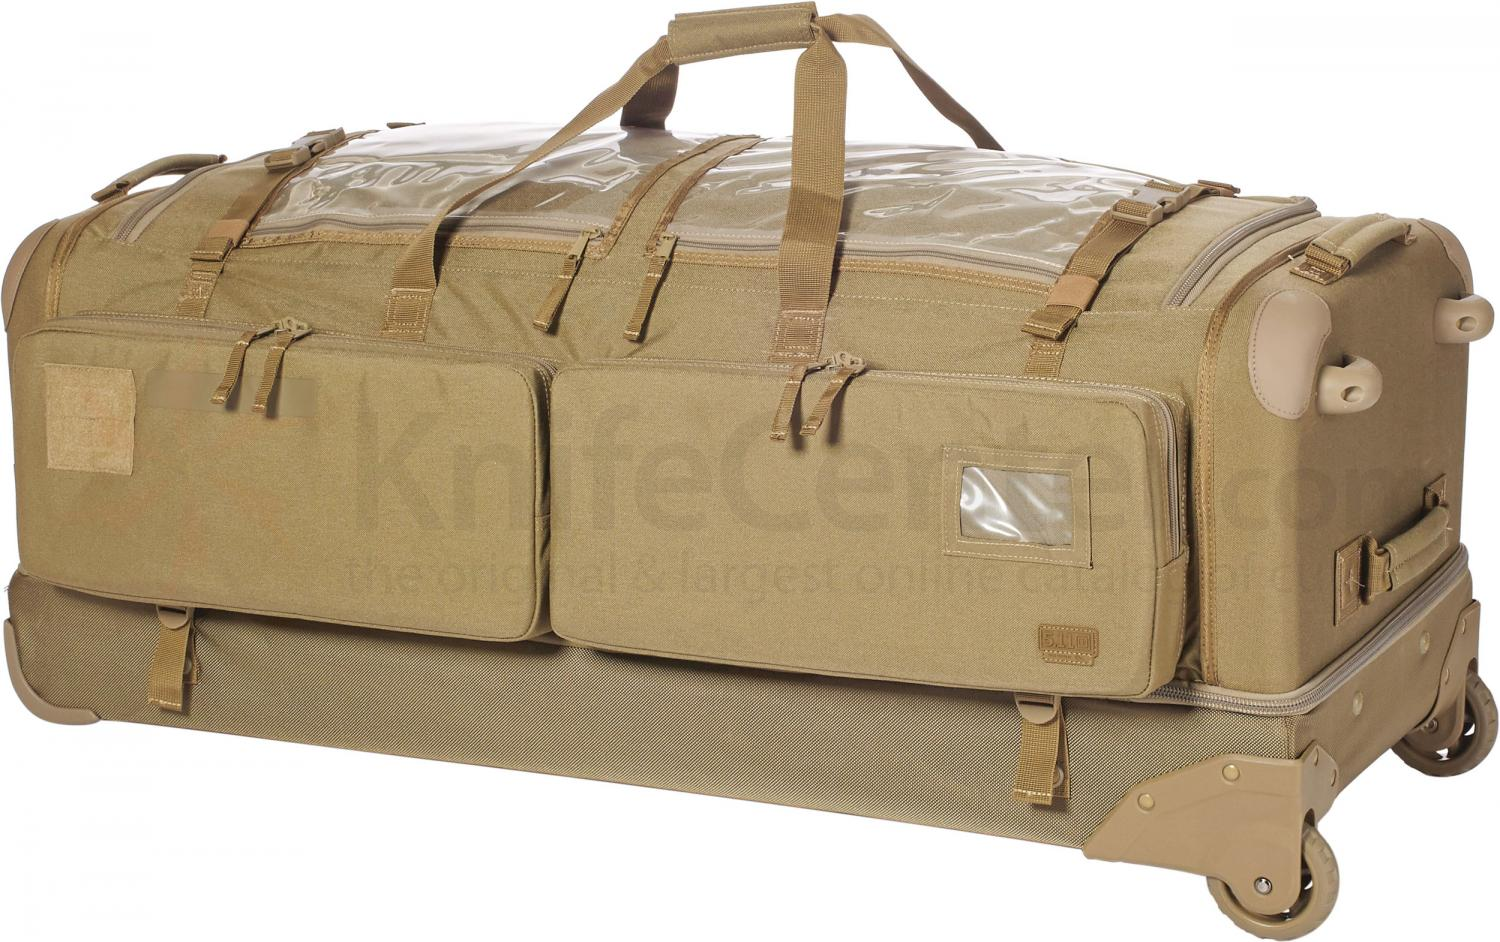 5.11 Tactical CAMS 2.0 Large Tactical Rolling Duffel, Sandstone (50159-328) - KnifeCenter